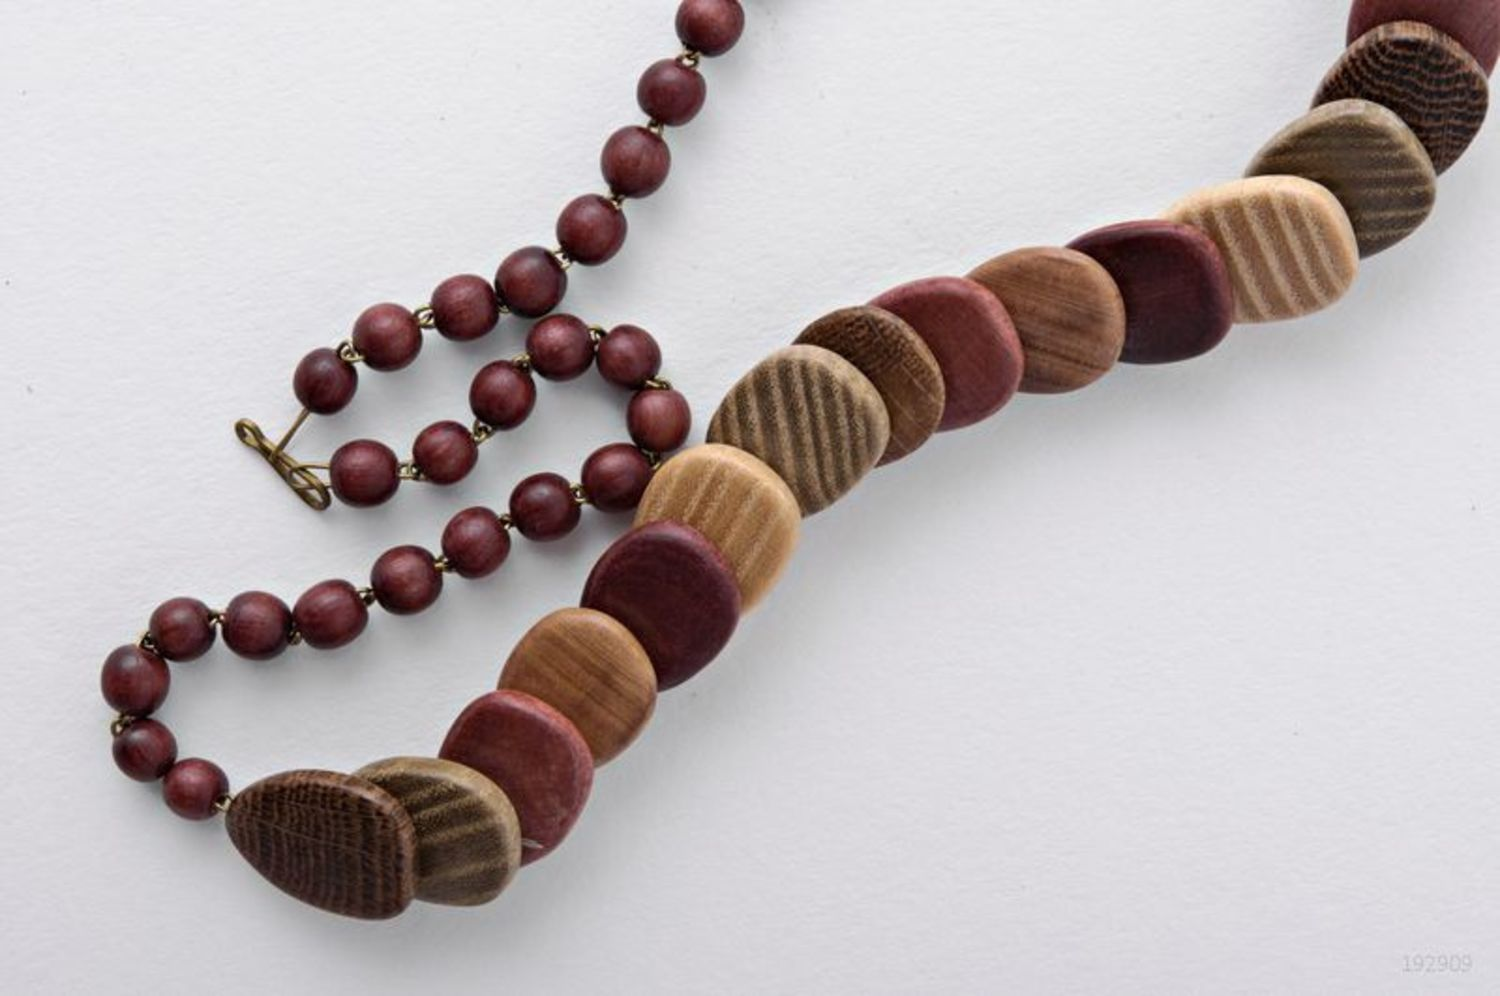 Wooden necklace photo 2